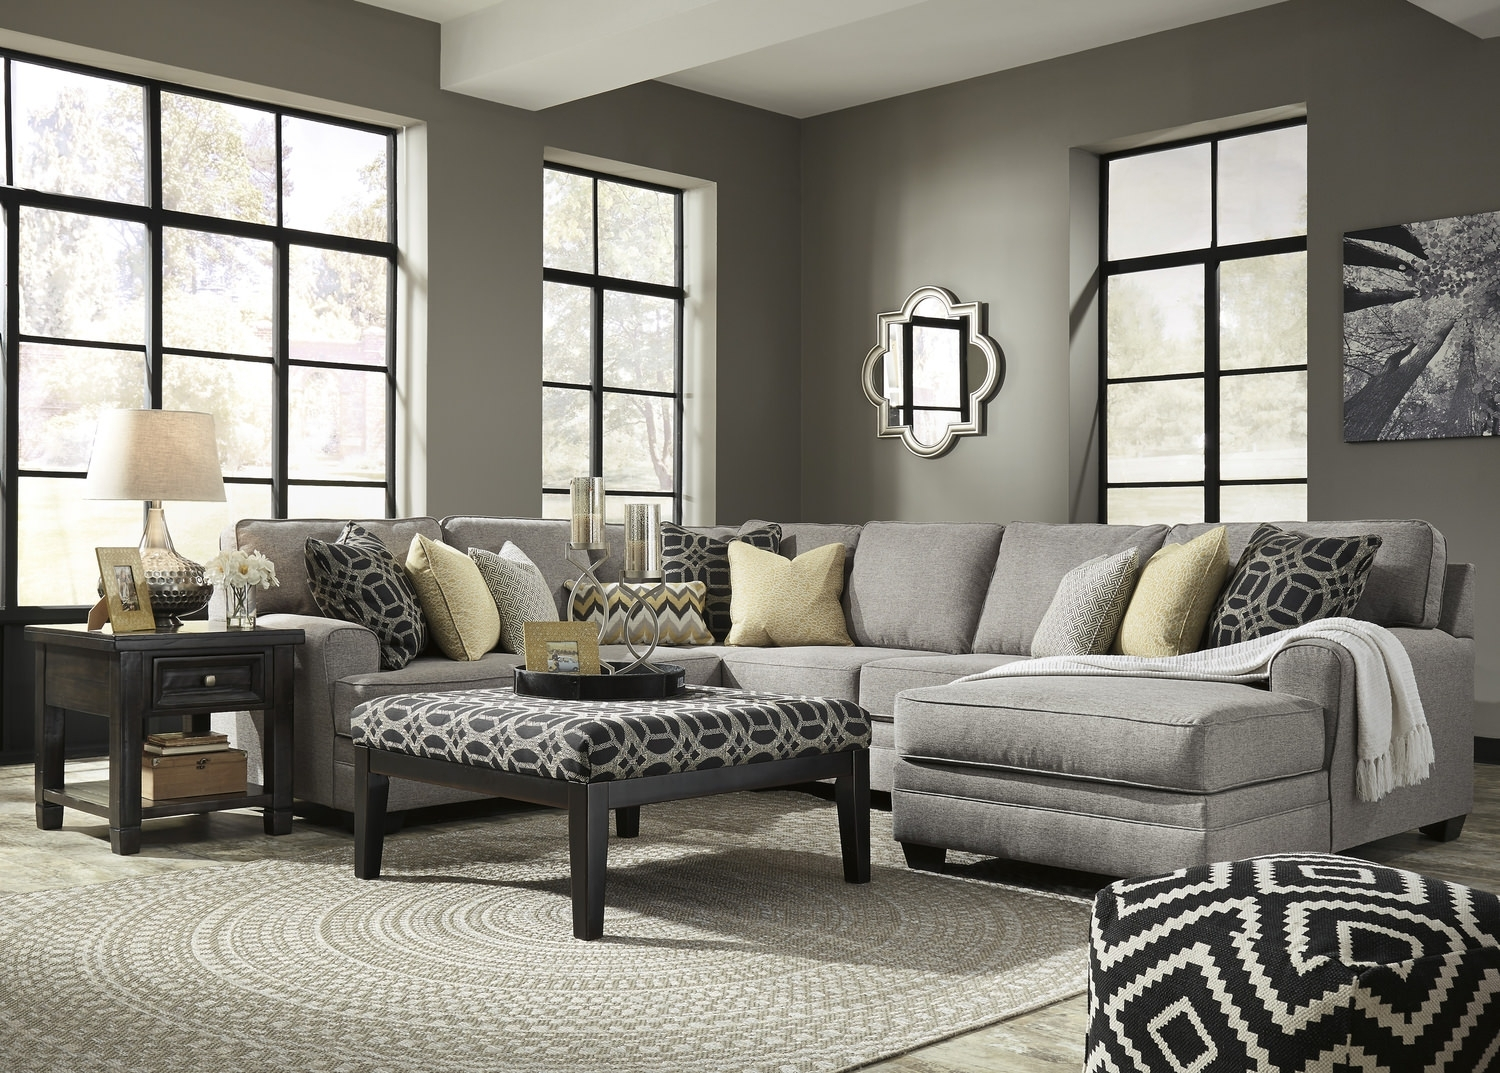 City 4 Piece Sectional | Hom Furniture Throughout St Cloud Mn Sectional Sofas (Image 1 of 10)